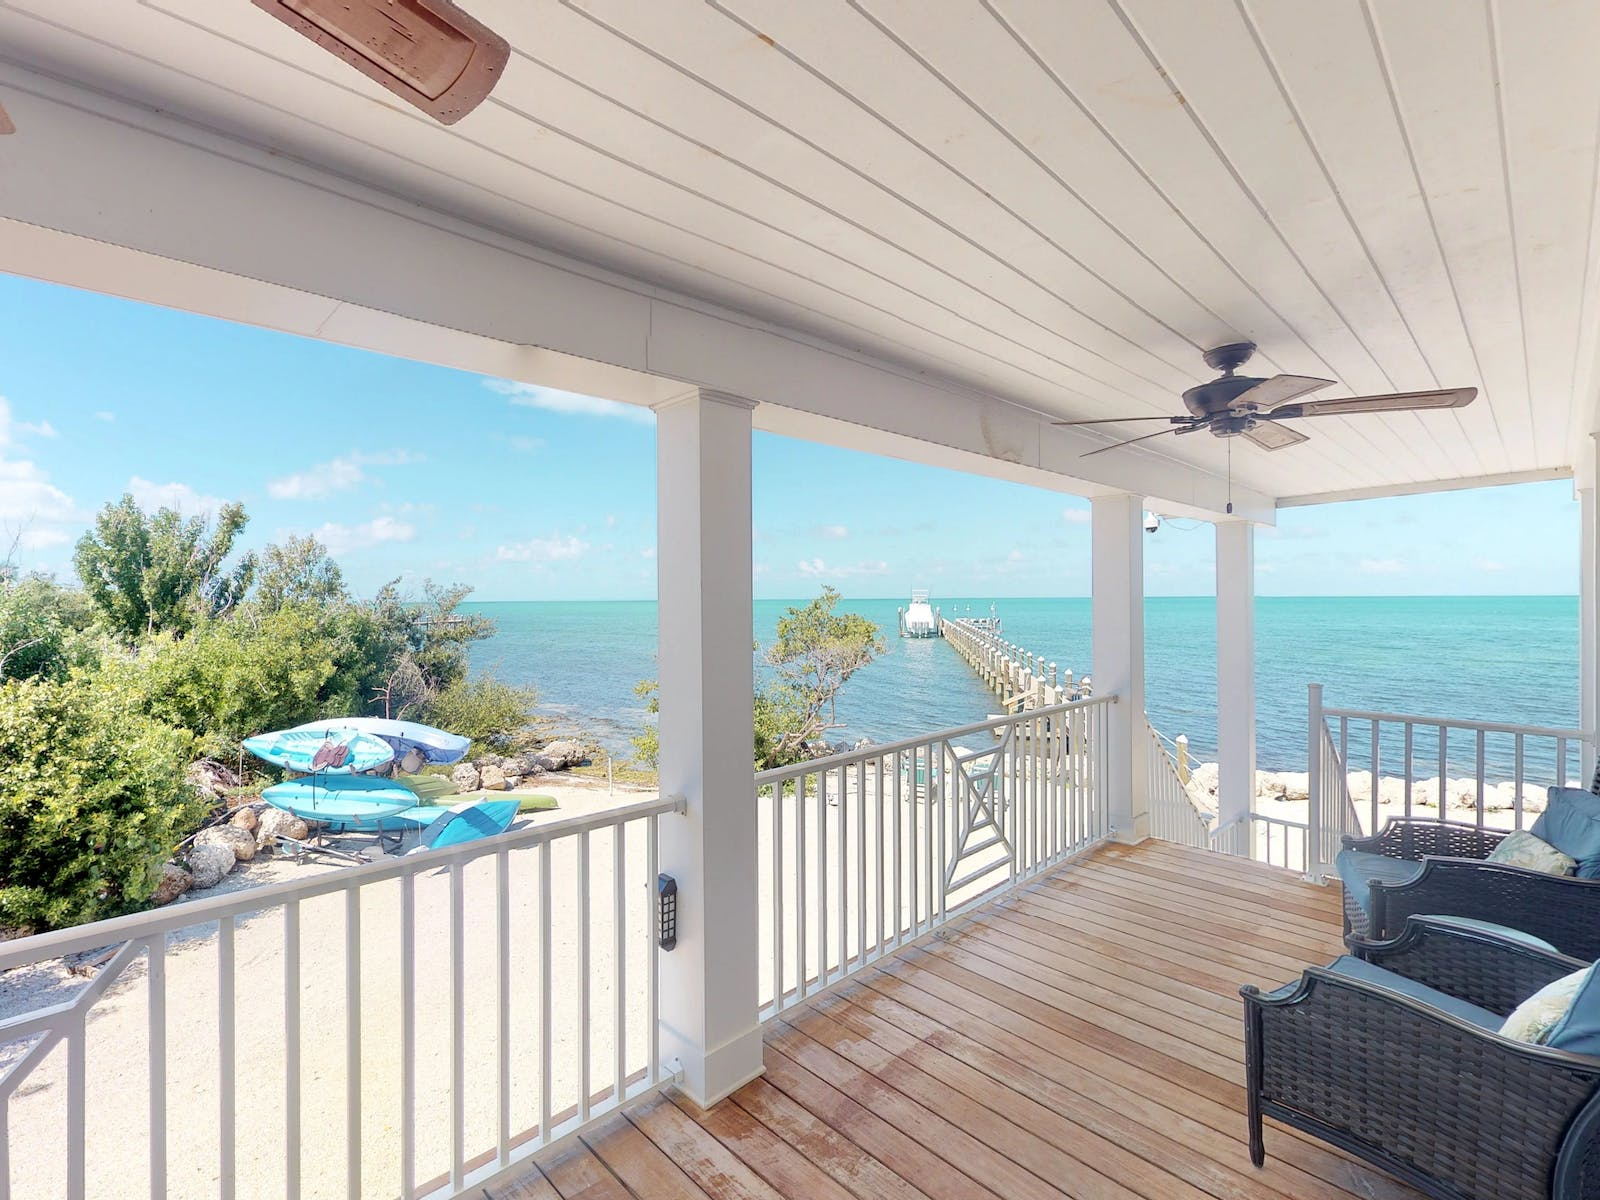 View of turquoise waters and beach from Marathon, FL beach house